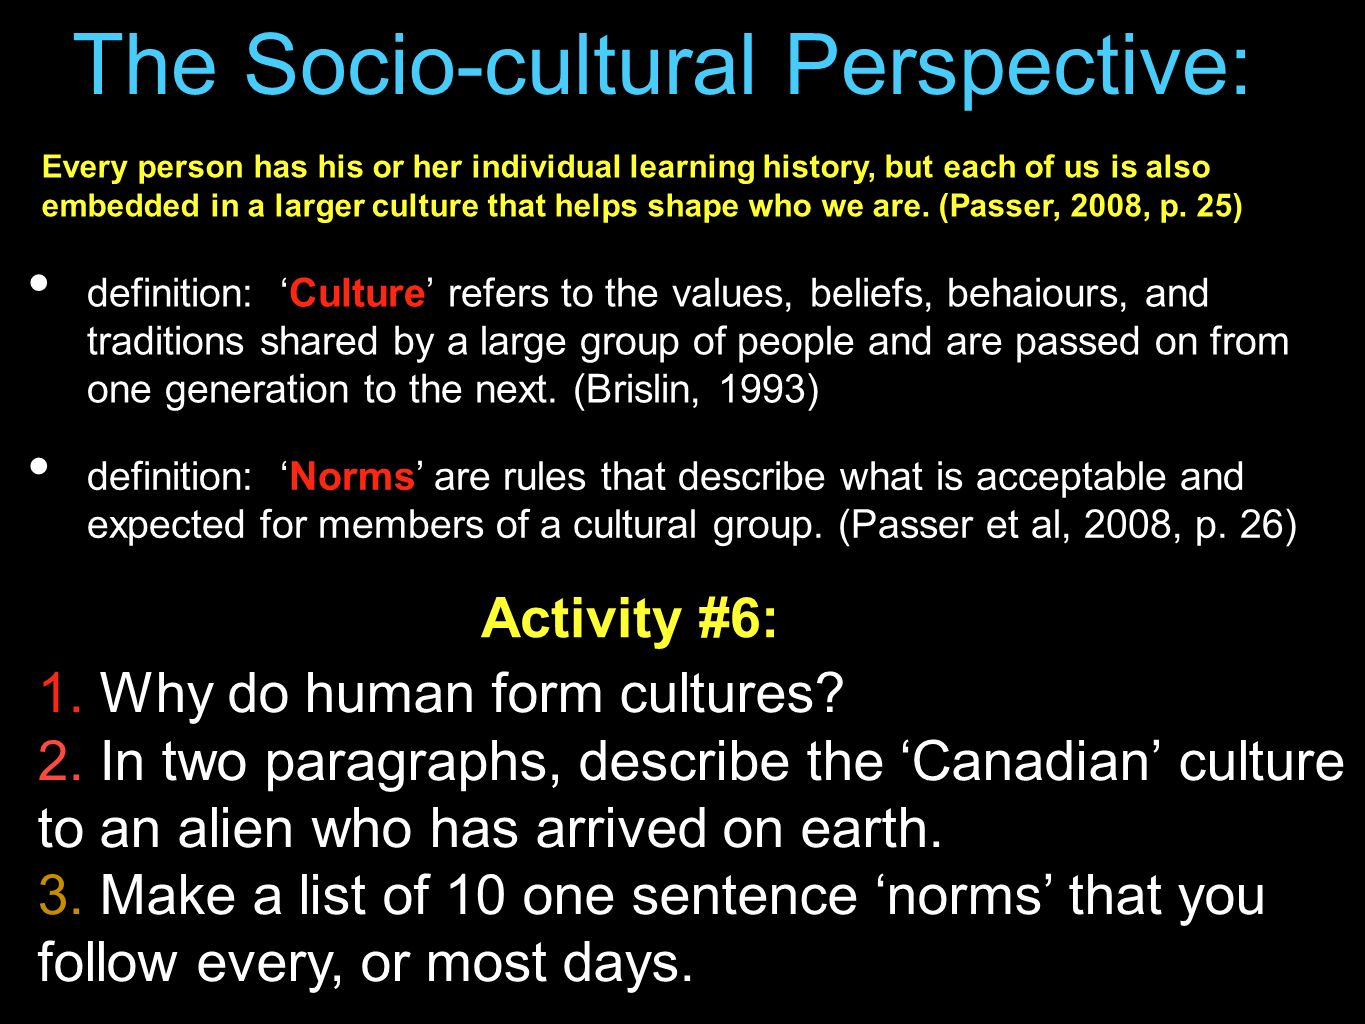 sociocultural perspective The sociocultural perspective is a theory used in fields such as psychology and is used to describe awareness of circumstances surrounding individuals and how their behaviors are affected specifically by their surrounding, social and cultural factors.